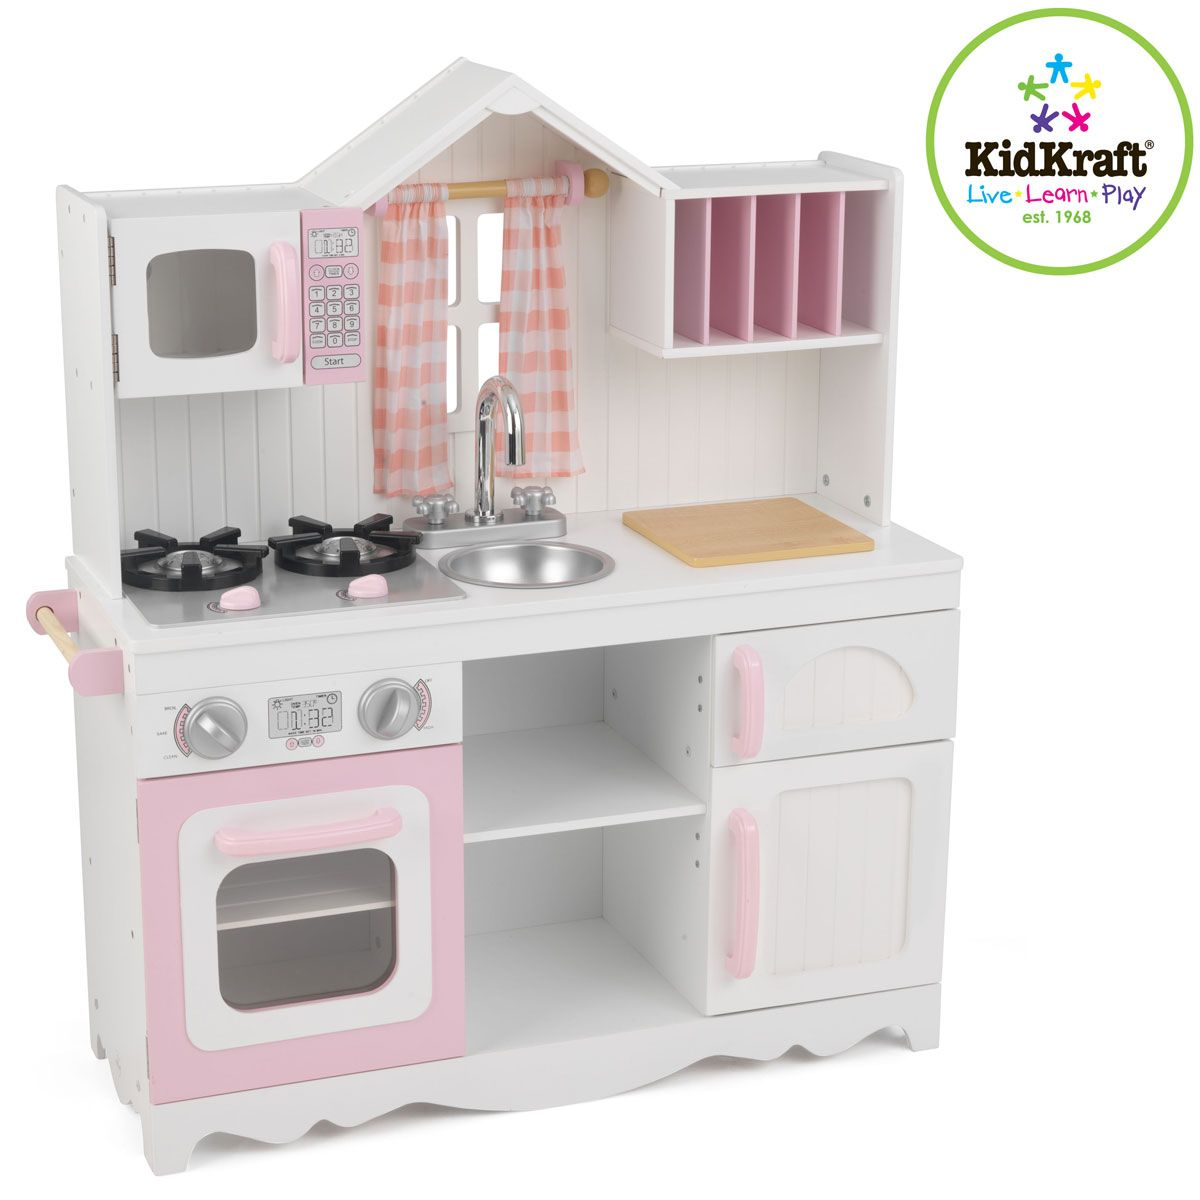 Kidkraft Küche Espresso 13 Play Kitchens Ideas | Play Kitchen, Kids Play Kitchen, Toy Kitchen